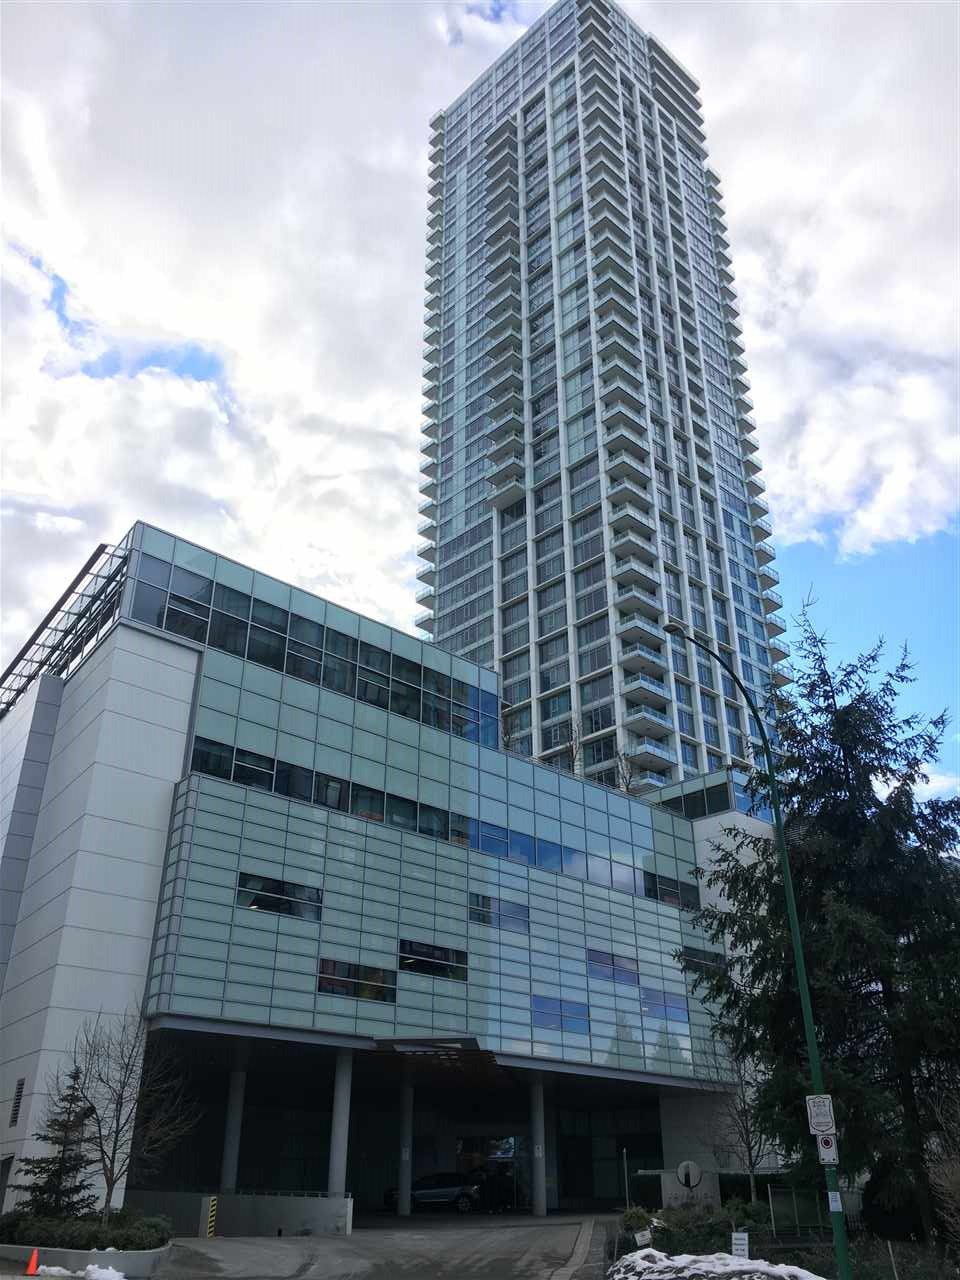 Main Photo: 3103 4508 HAZEL Street in Burnaby: Forest Glen BS Condo for sale (Burnaby South)  : MLS®# R2349337